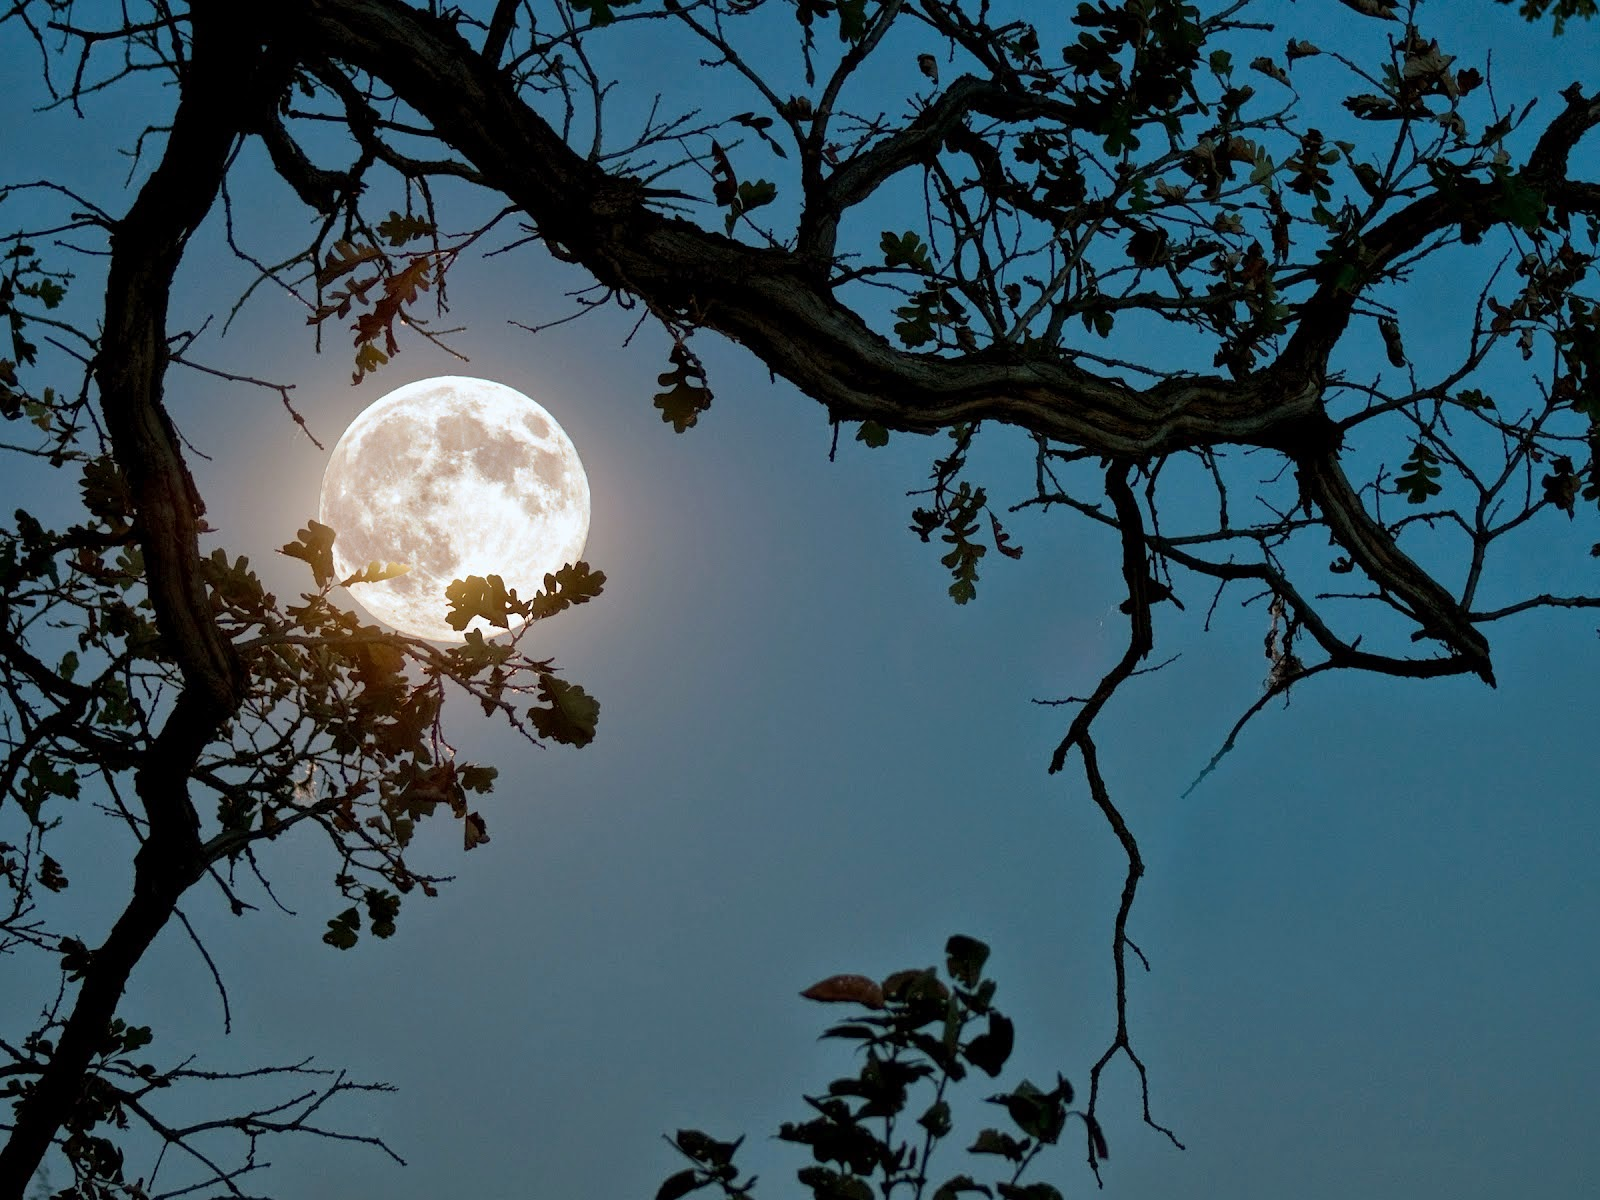 Moonlight-photography-view-of-moon-between-tree-leaves.jpg